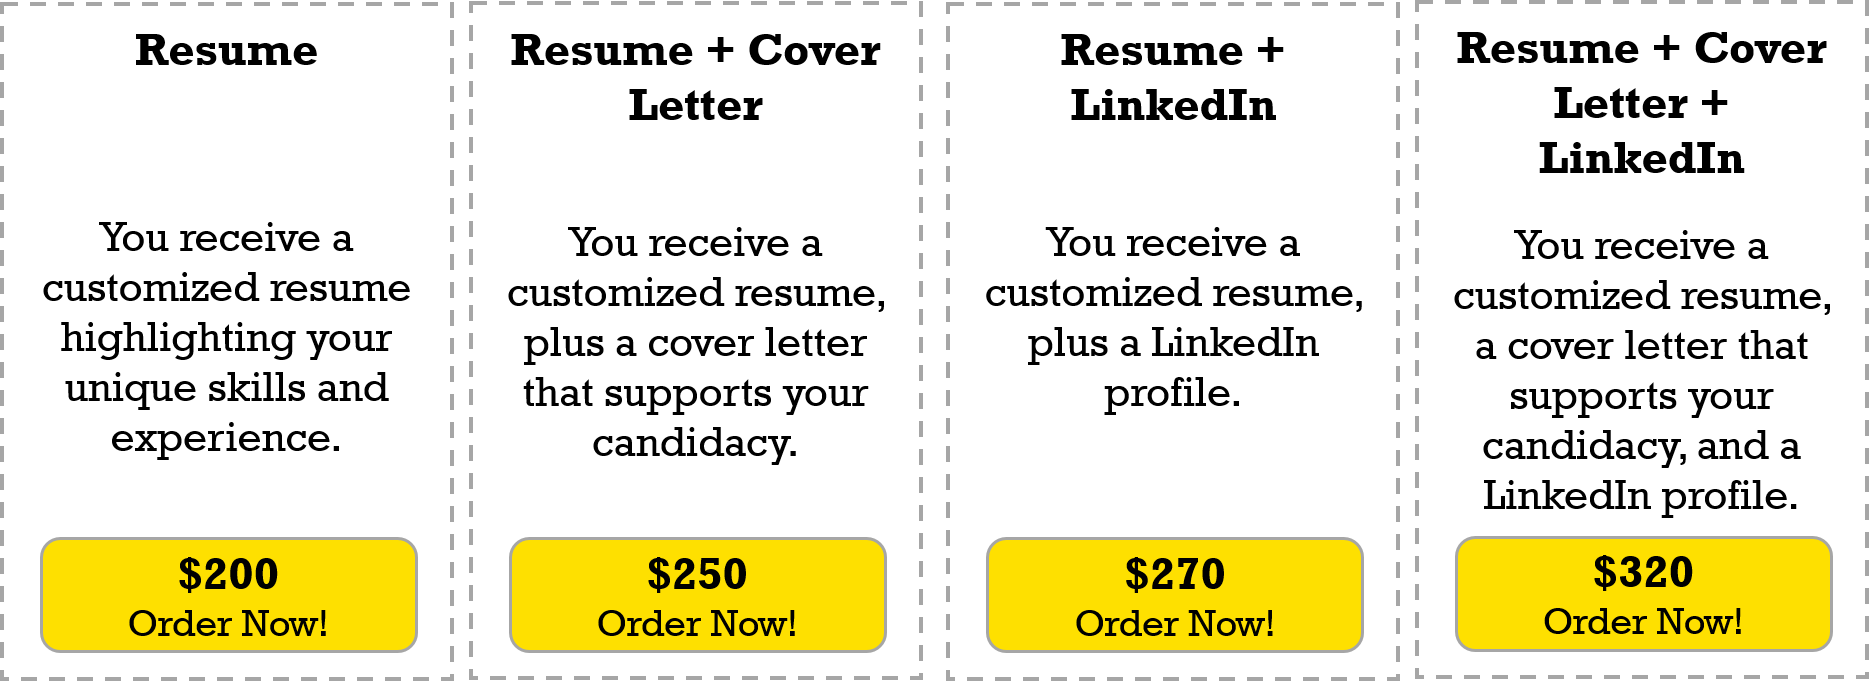 Resume Writing Services: Options